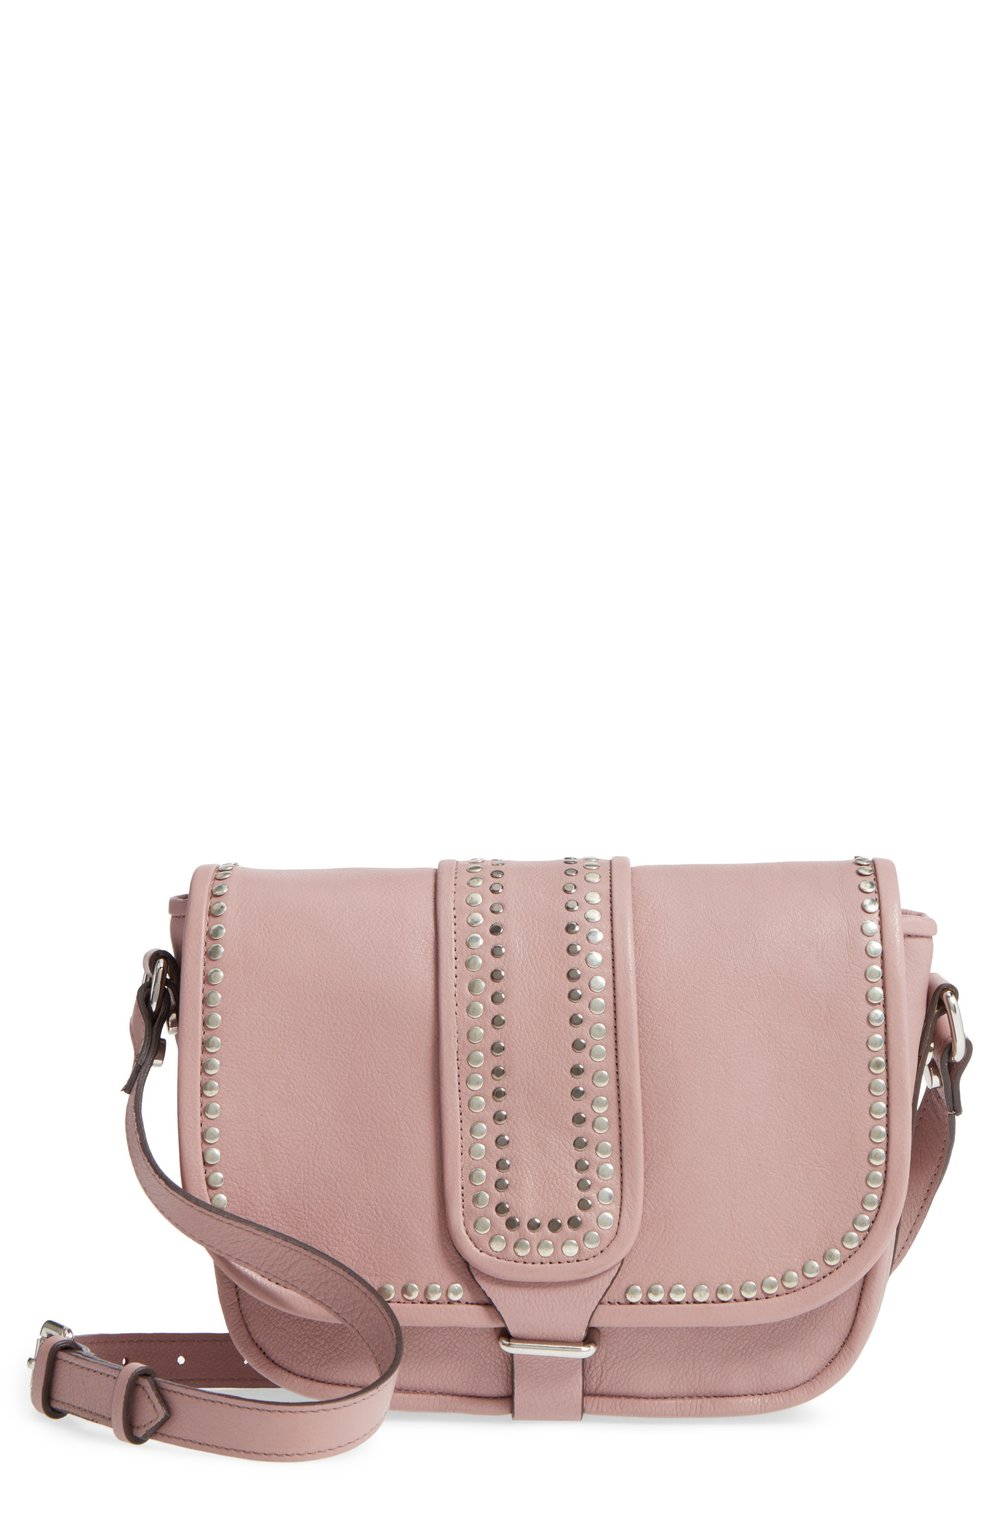 studded blush leather bag